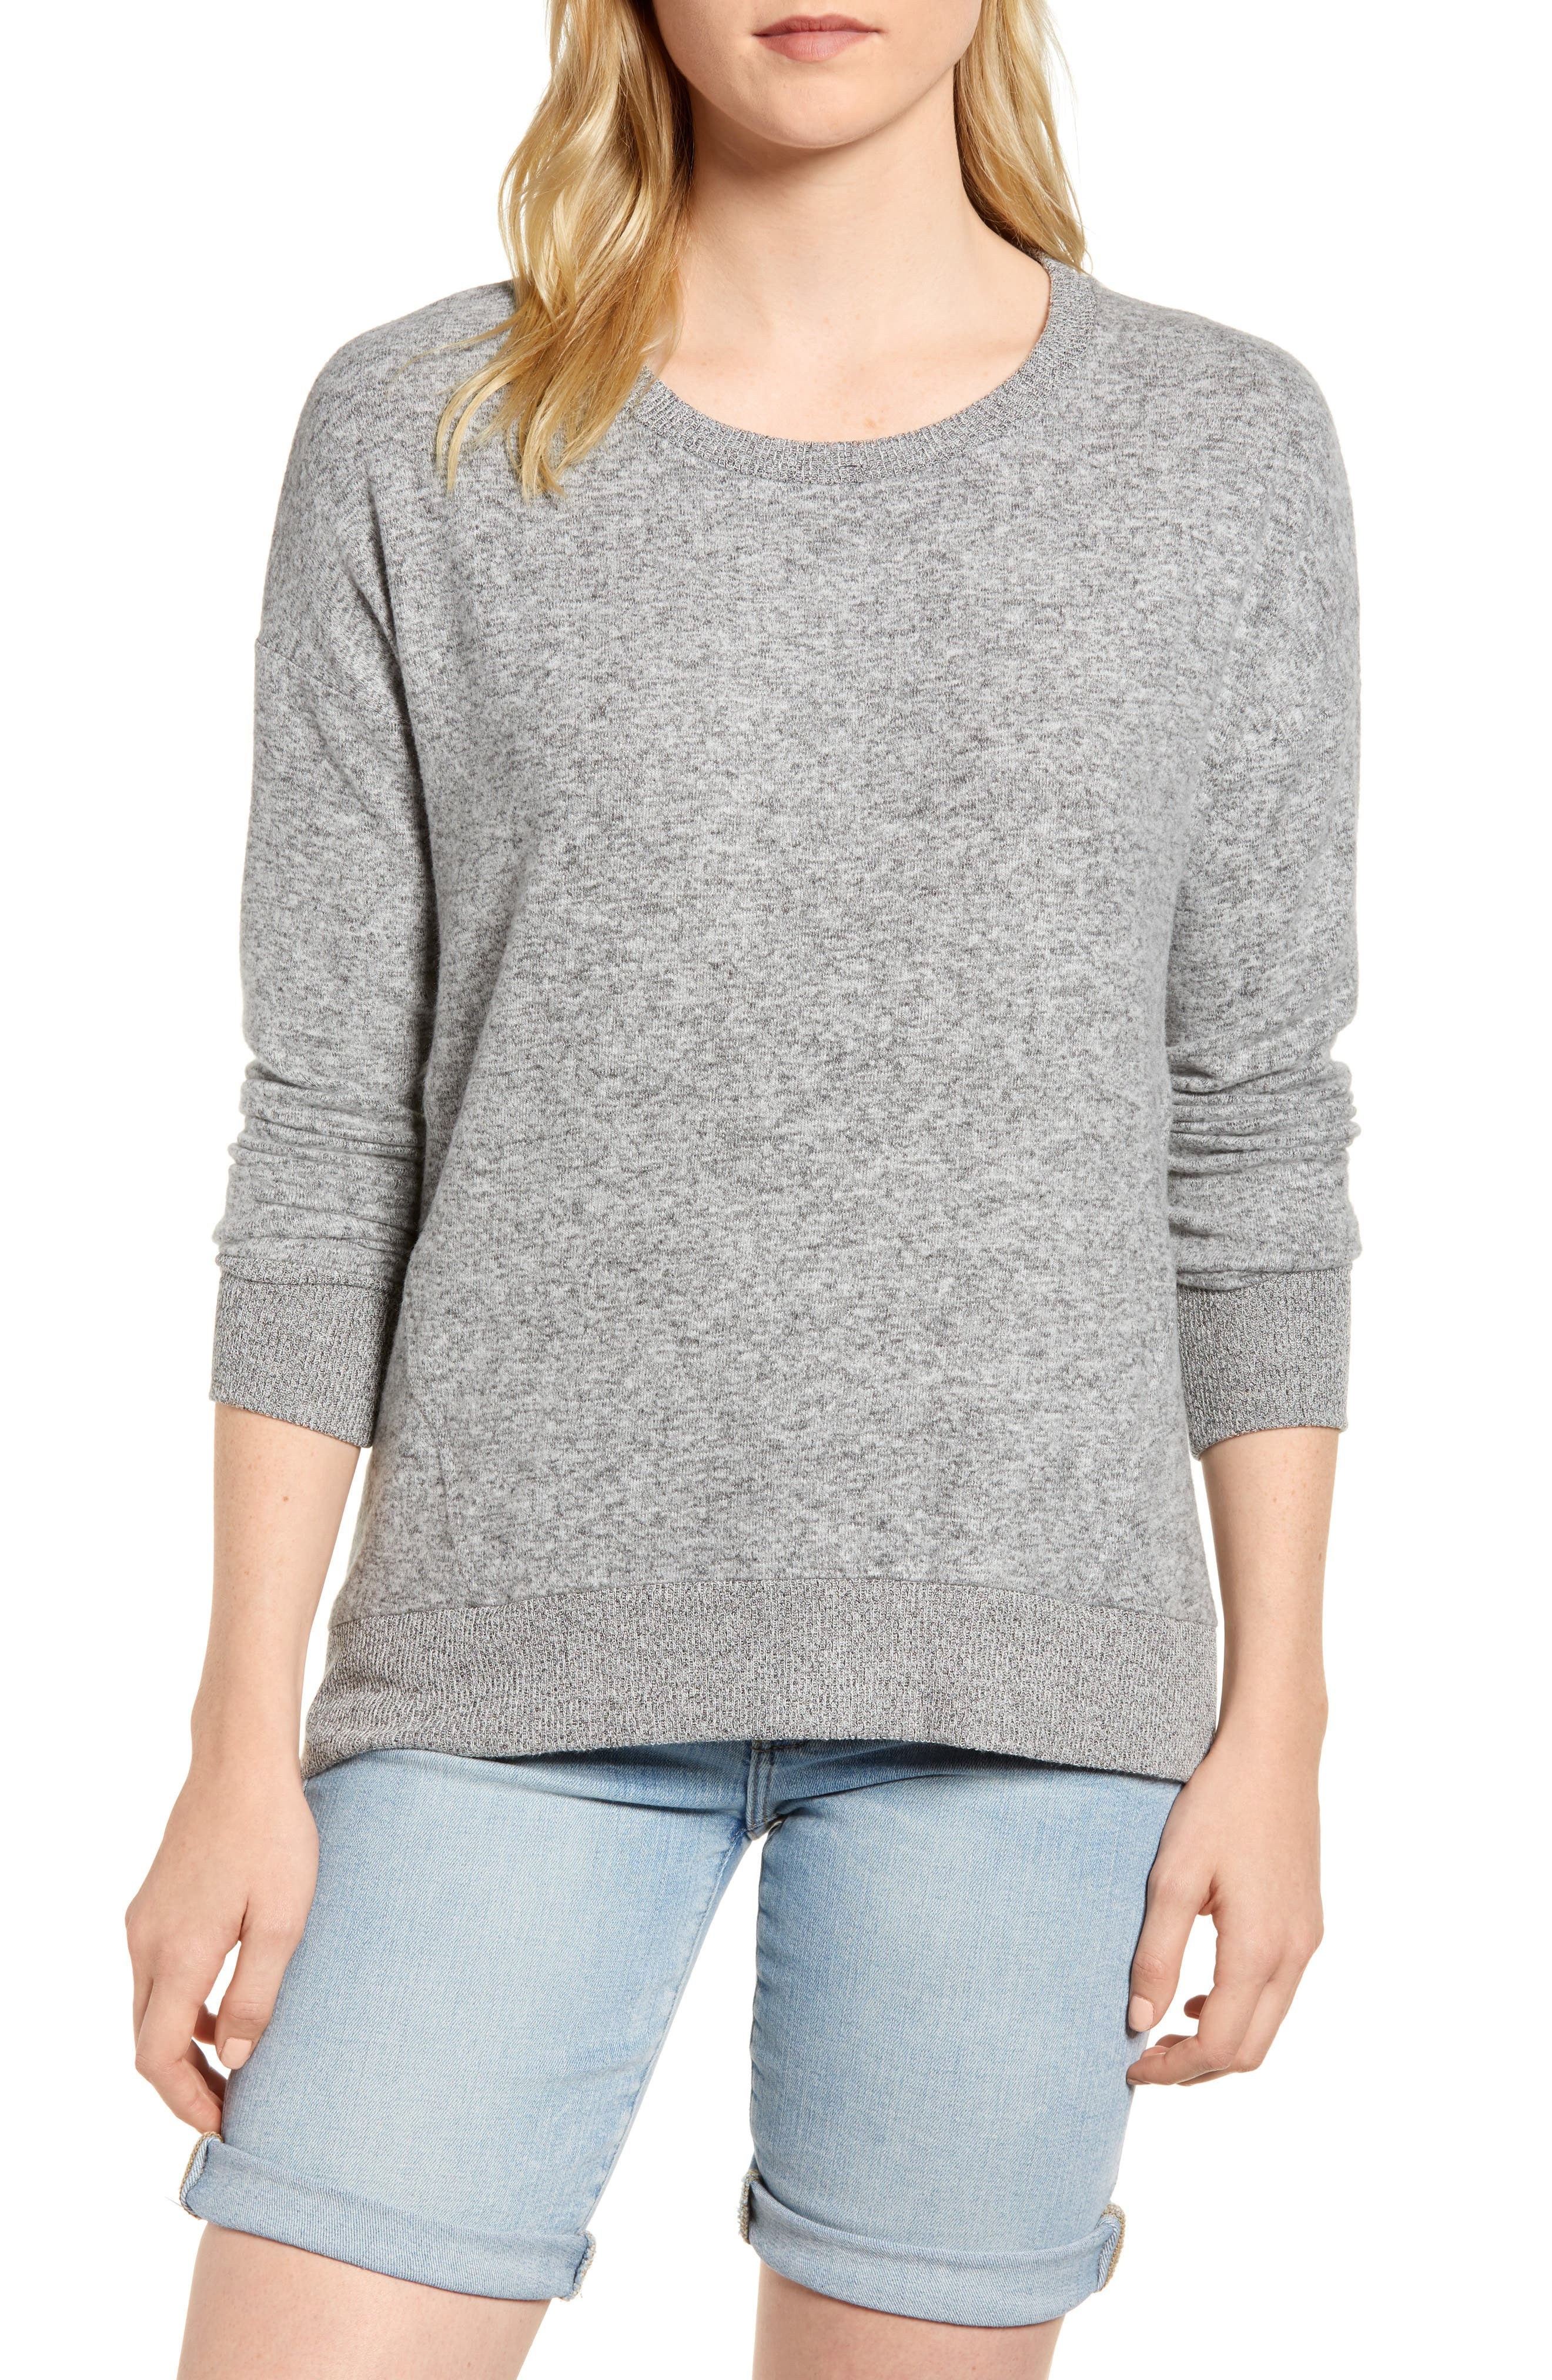 x Living in Yellow Chelsea Cozy Shirttail Sweater,                             Main thumbnail 1, color,                             Heather Grey